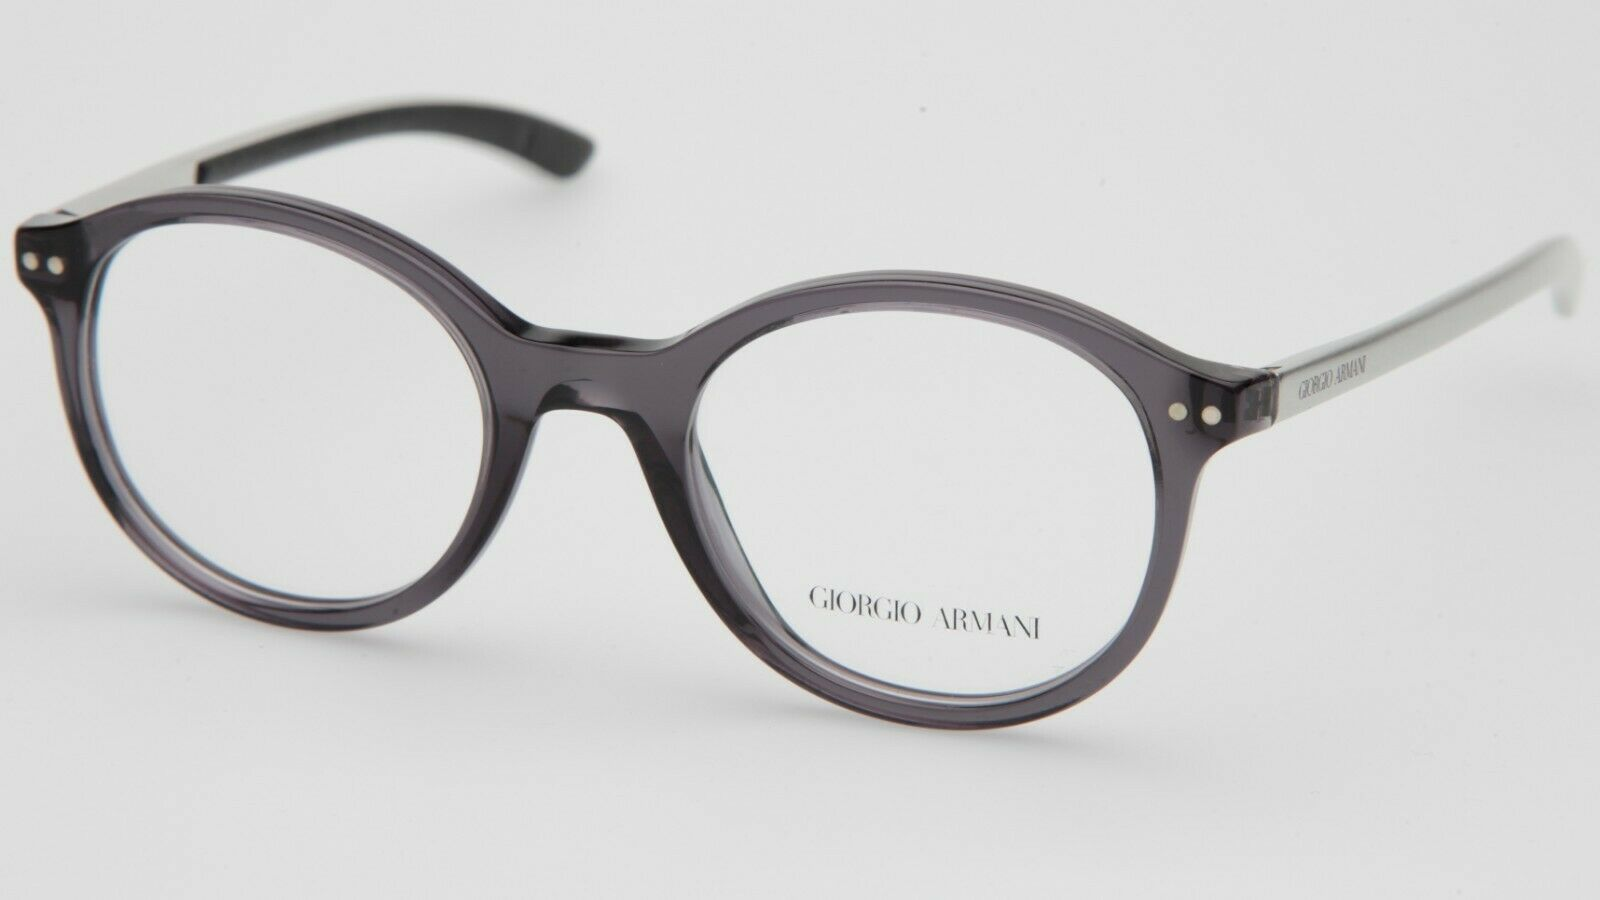 Primary image for New GIORGIO ARMANI AR7065-Q 5029 Grey EYEGLASSES FRAME 48-19-145mm B42mm Italy